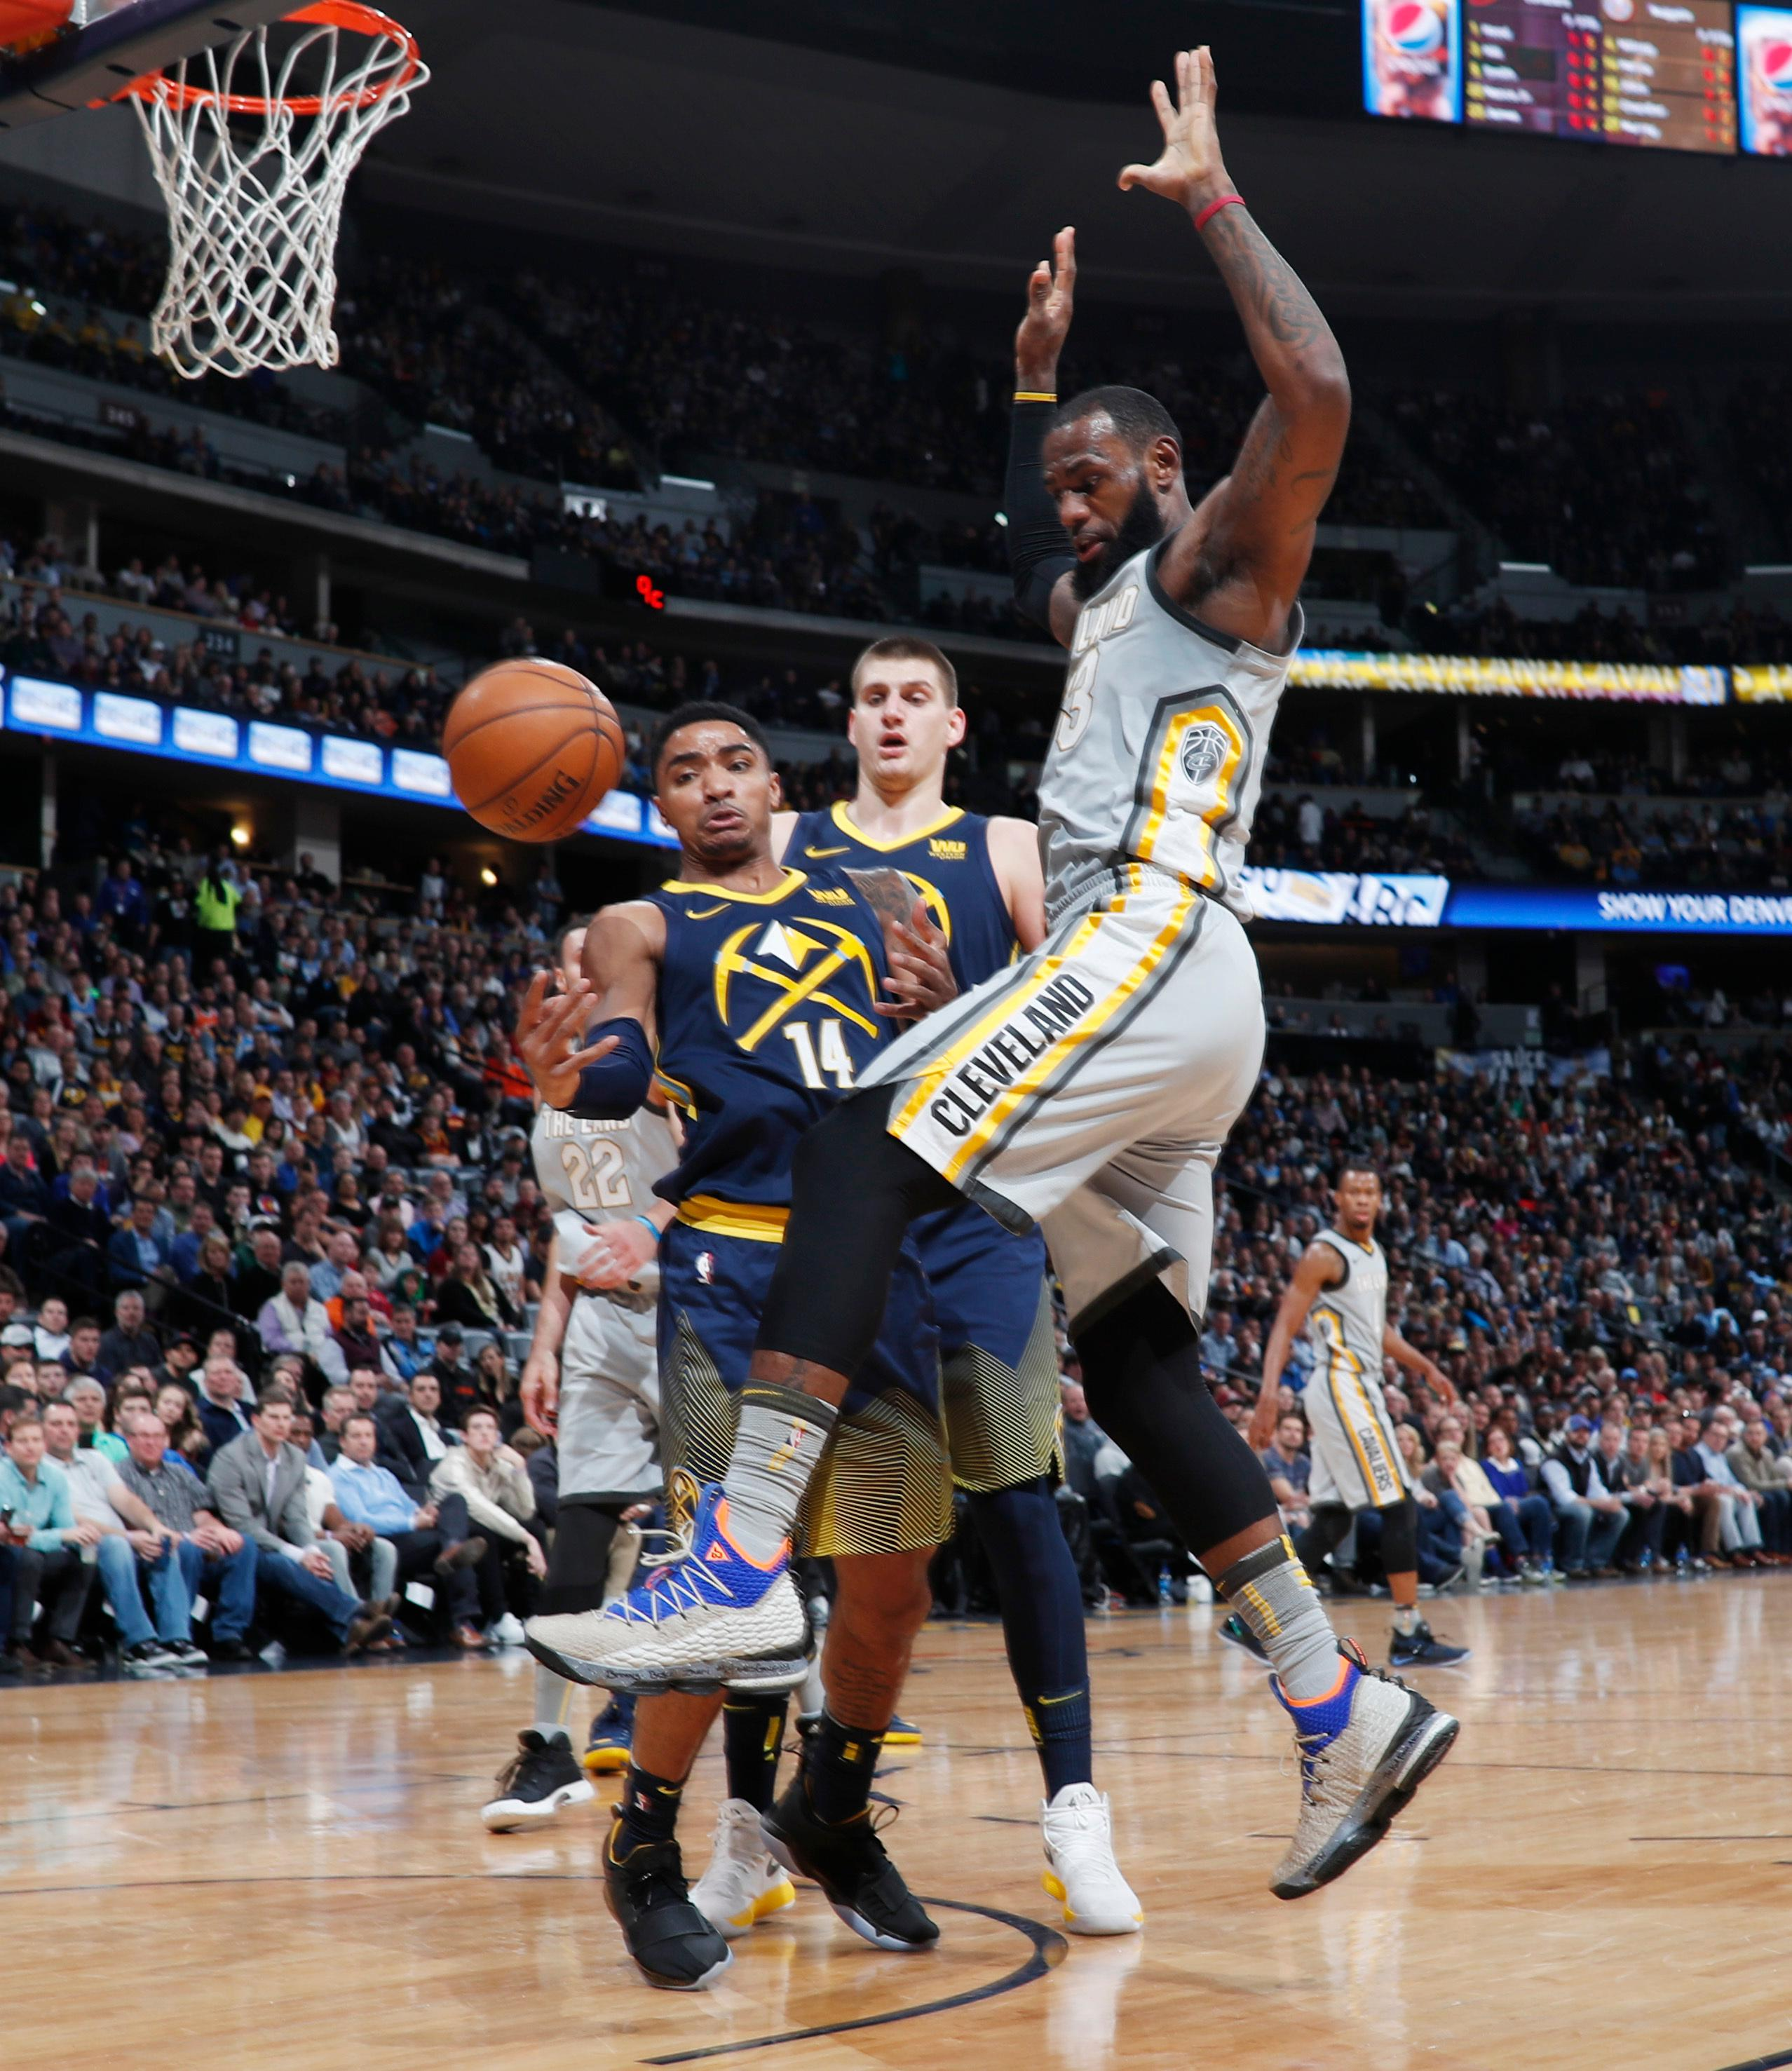 Denver Nuggets guard Gary Harris, left, knocks the ball out of the hands of Cleveland Cavaliers forward LeBron James during the first half of an NBA basketball game Wednesday, March 7, 2018, in Denver. (AP Photo/David Zalubowski)